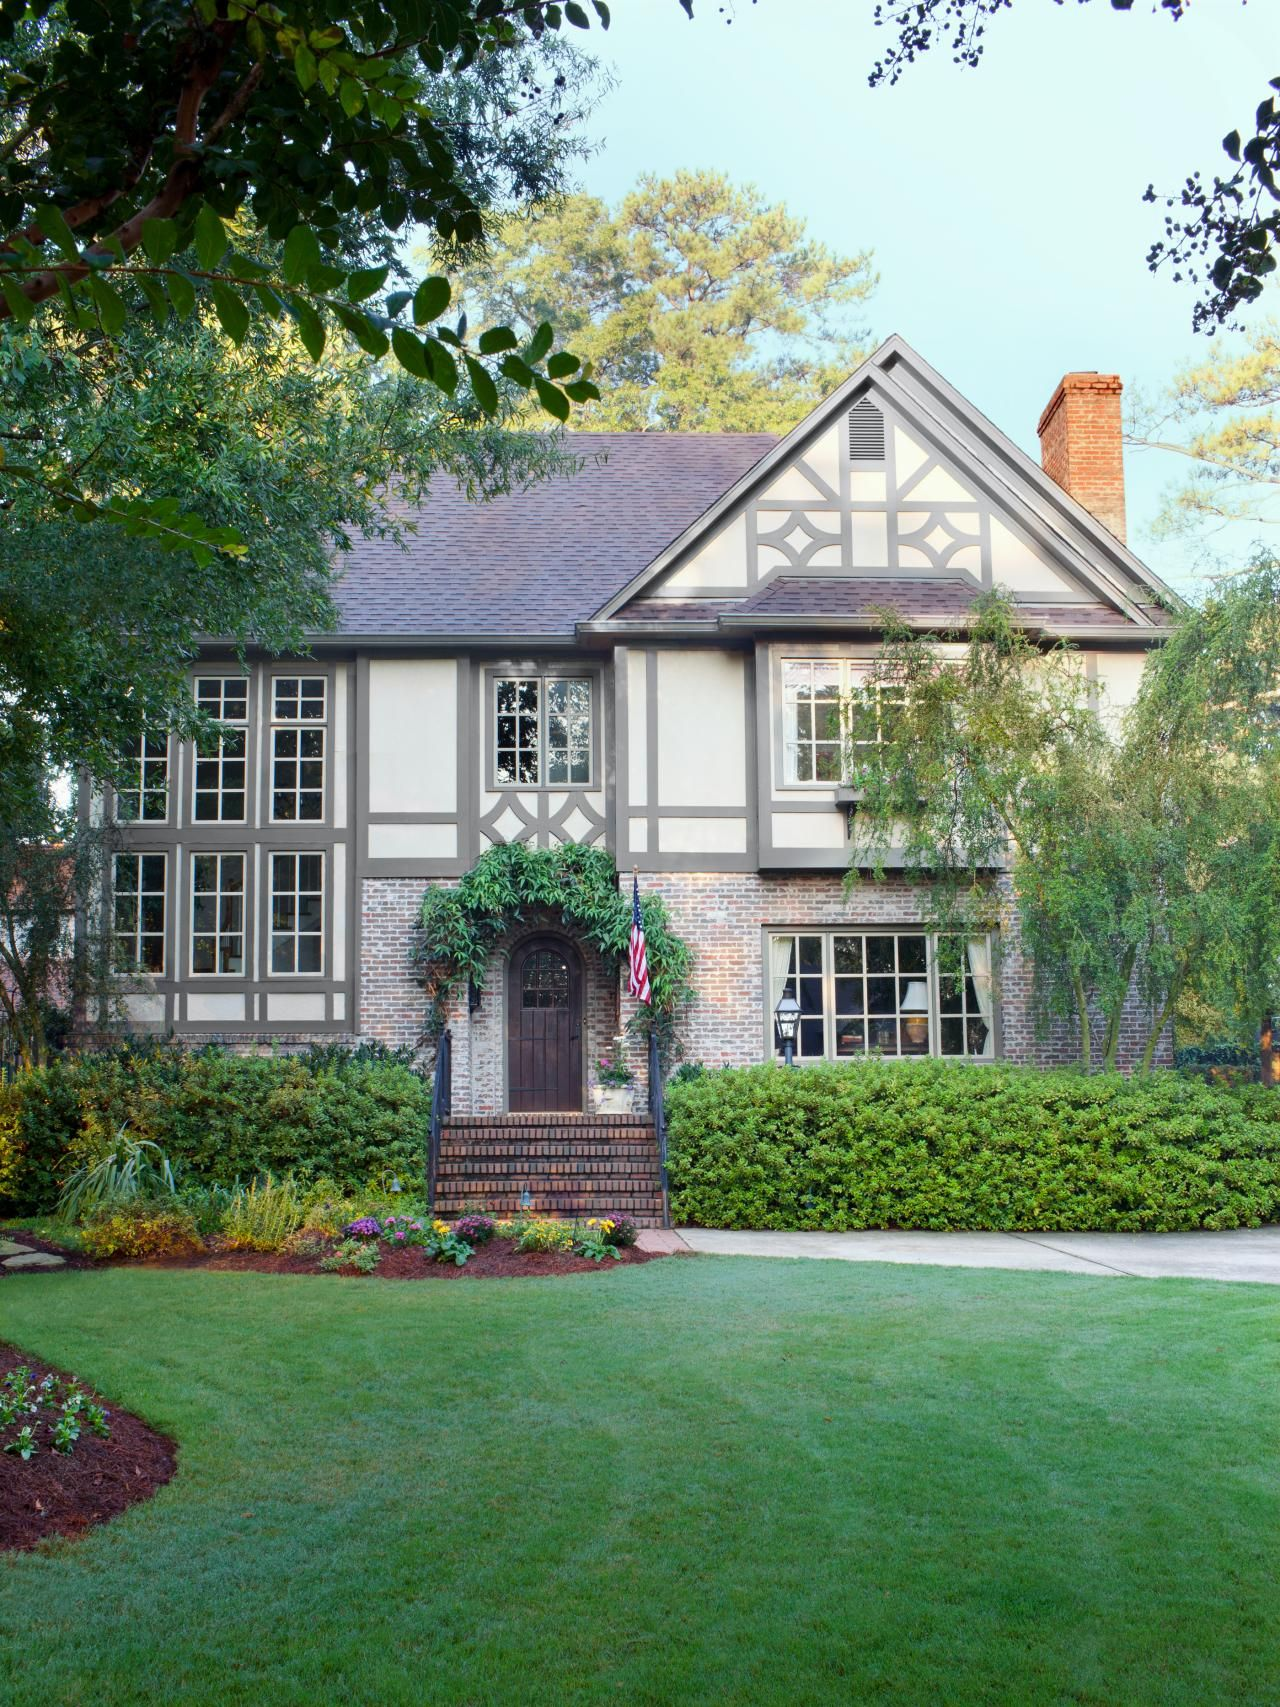 Stealable Curb Appeal Ideas from Tudor Revivals | Grey trim, Sag ...